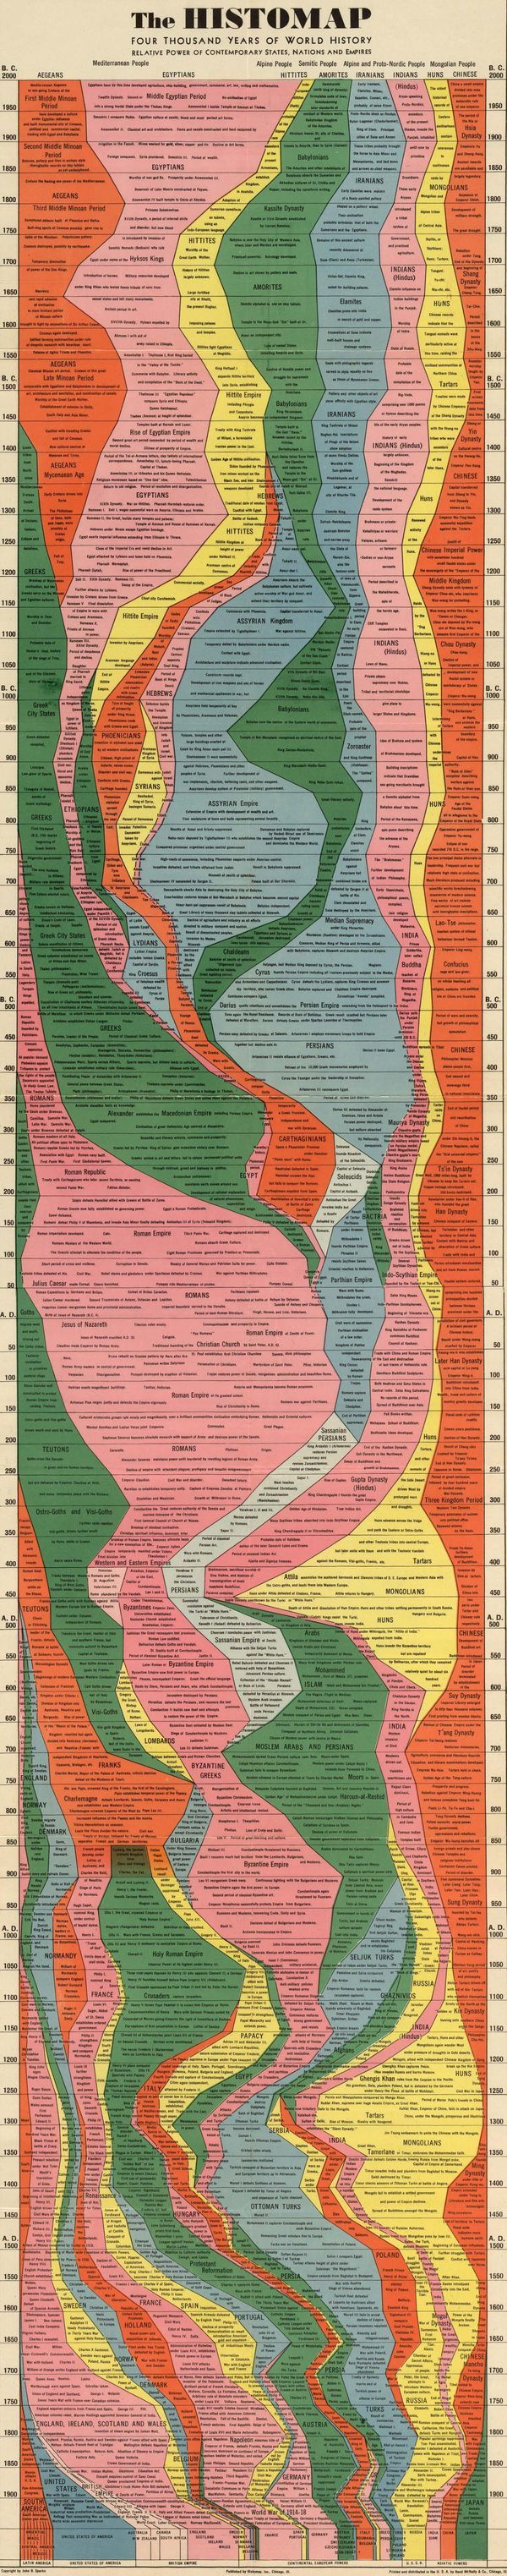 Histomap- 4000 years of relative powers of the world